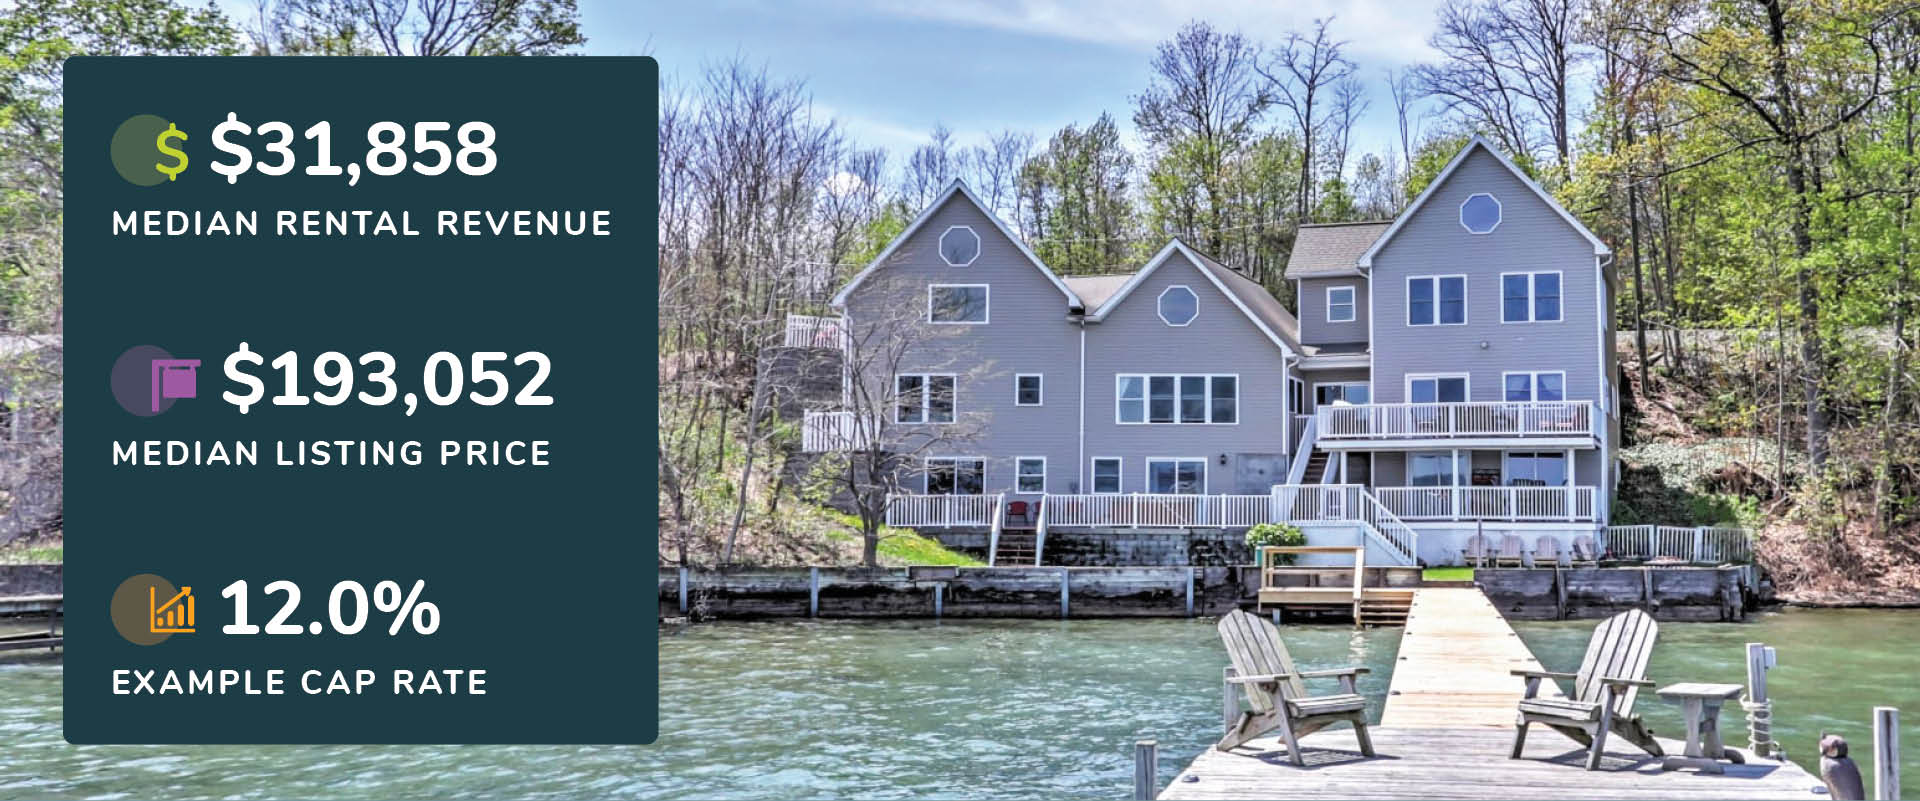 Graphic showing Geneva, New York rental revenue, listing price, and cap rate with a picture of a grey lake house with chairs on a pier